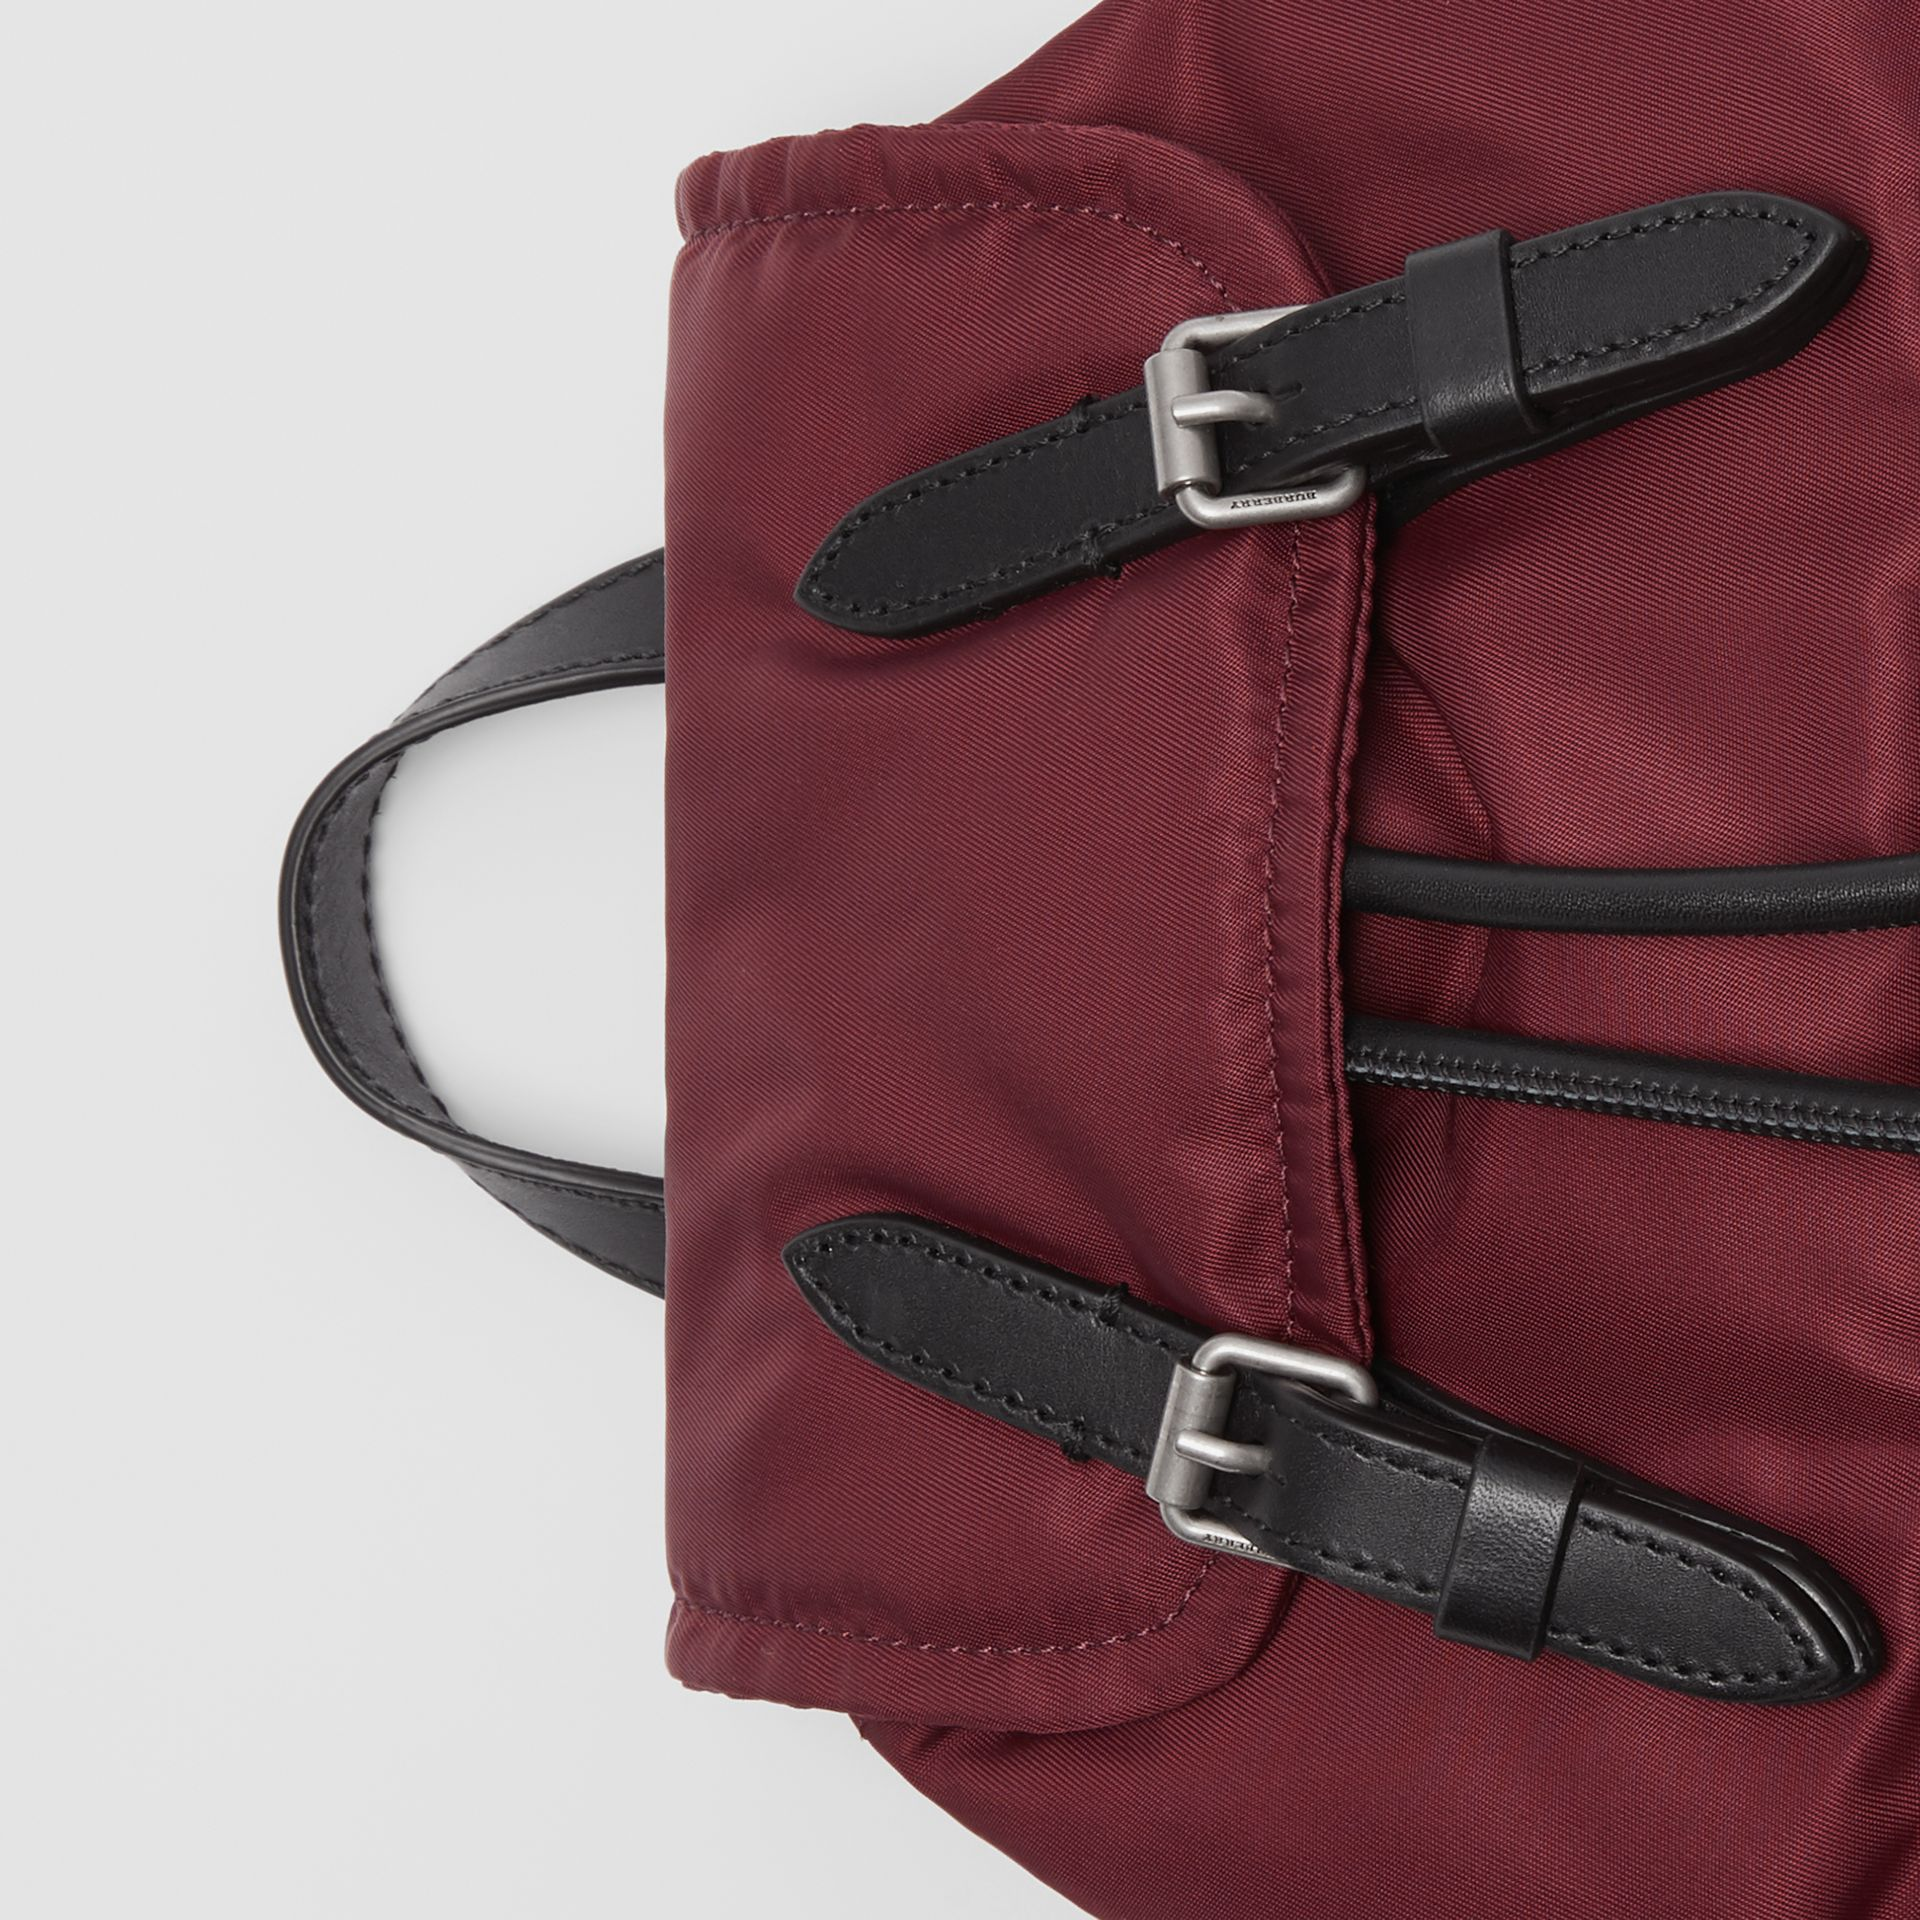 The Small Crossbody Rucksack in Puffer Nylon in Burgundy Red - Women | Burberry - gallery image 1